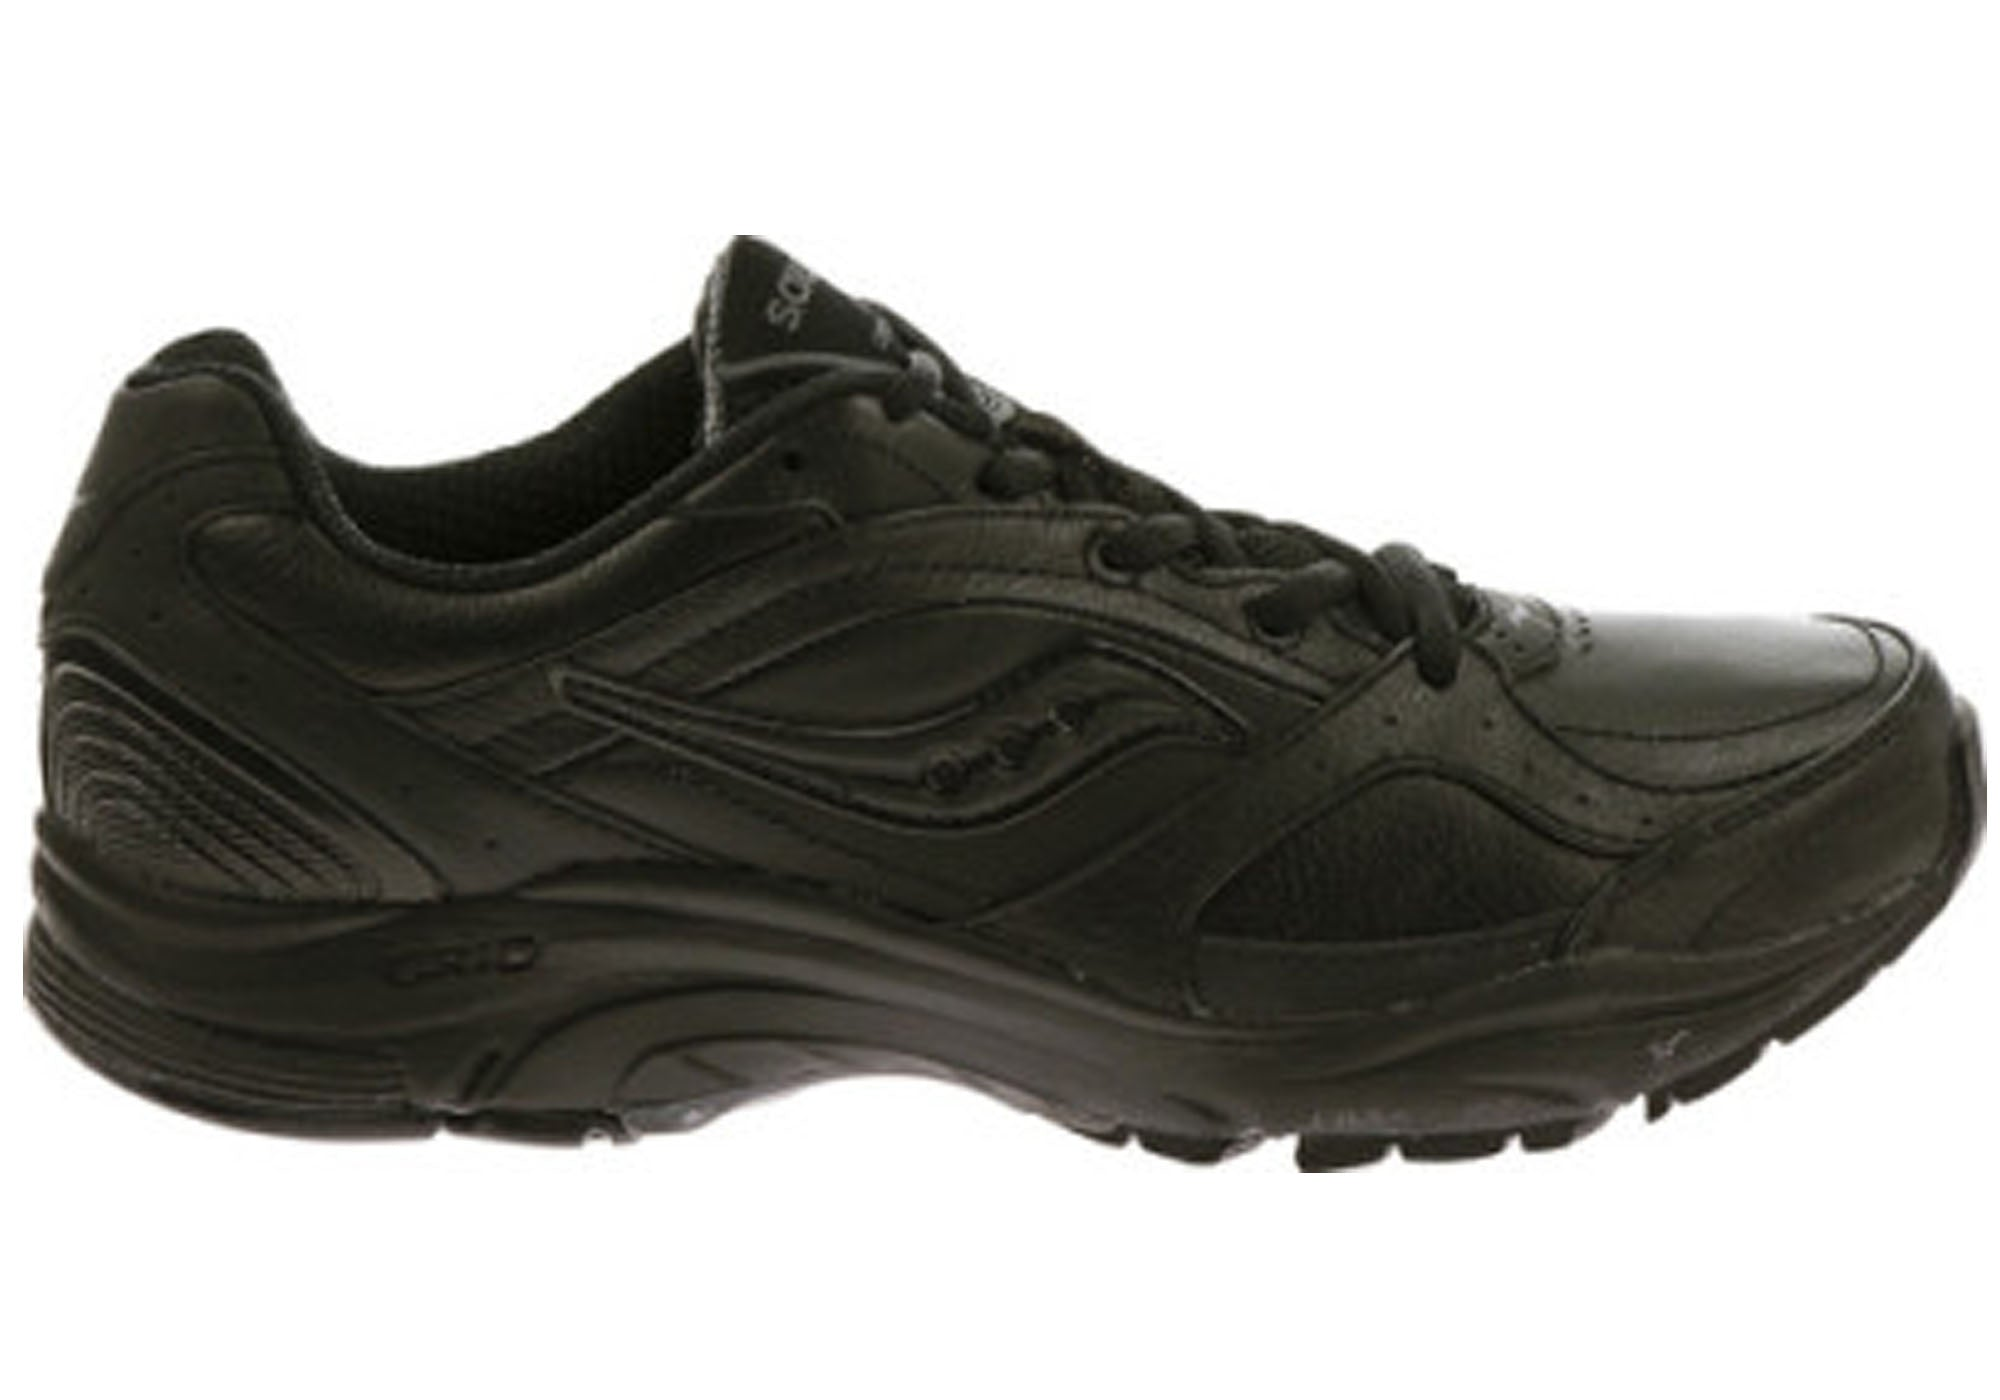 35bf6b6892 Saucony Womens Integrity ST2 D Width Wide Fitting Walking Shoes